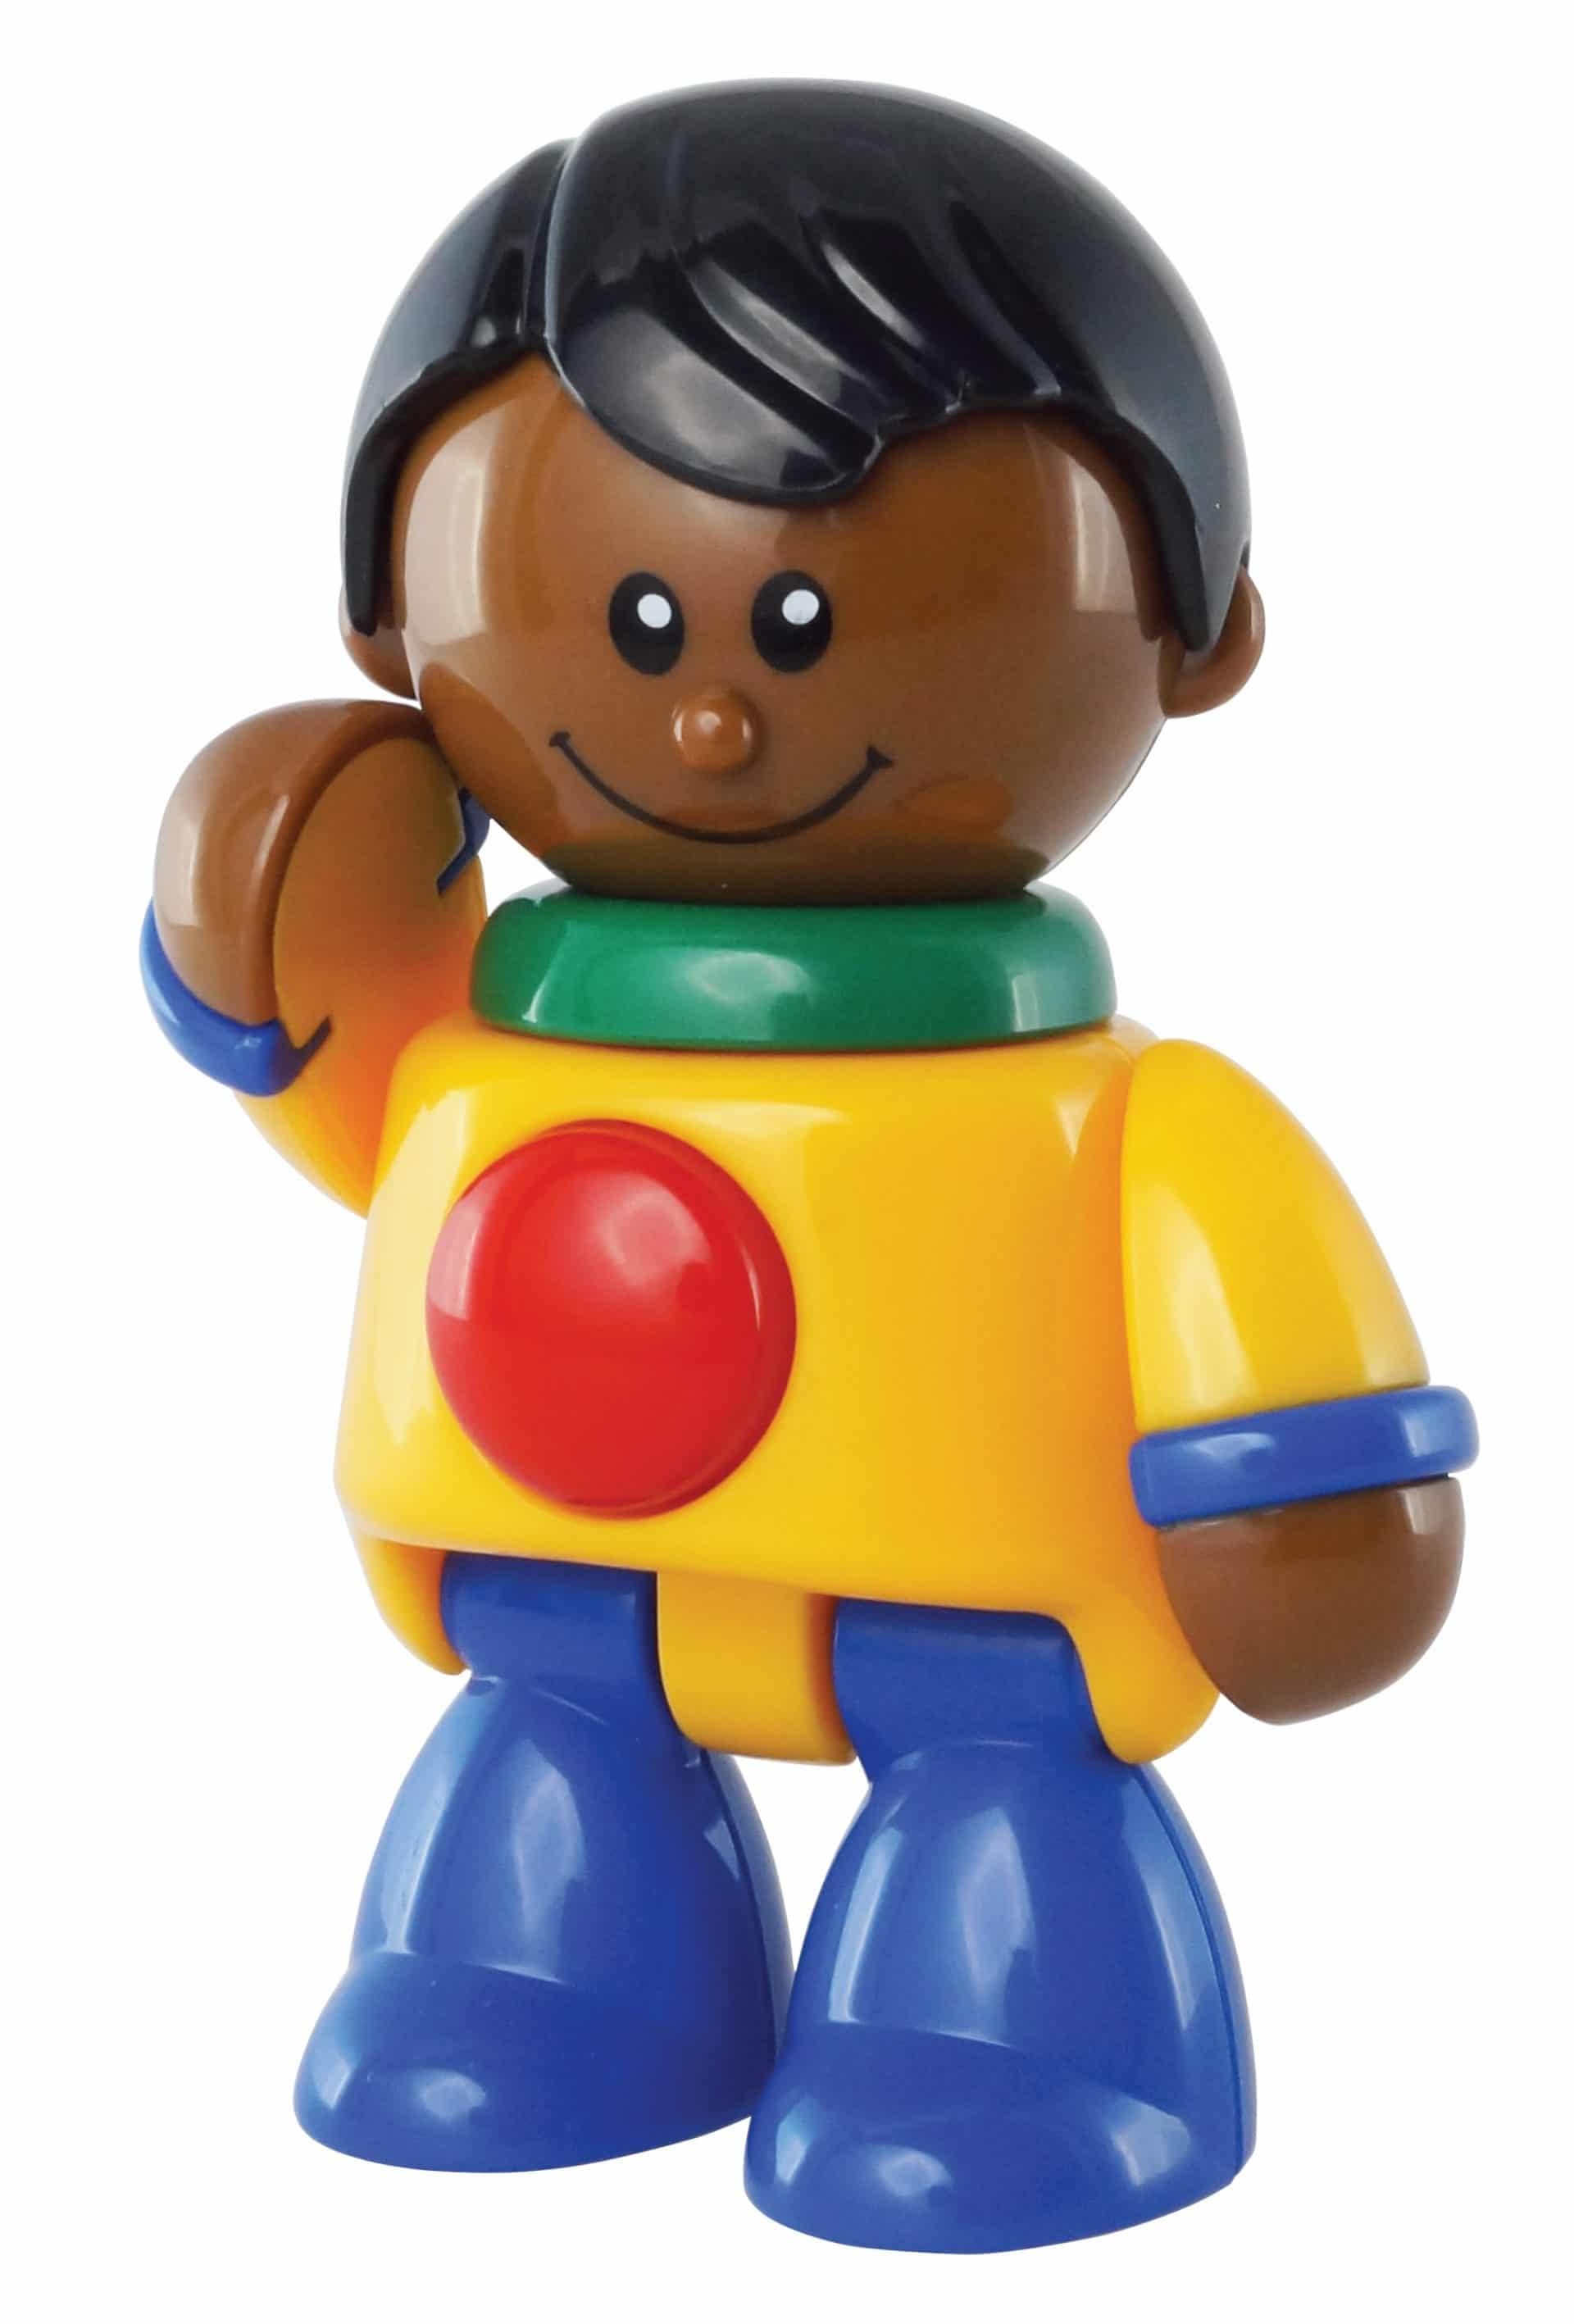 African American boy articulated play figure